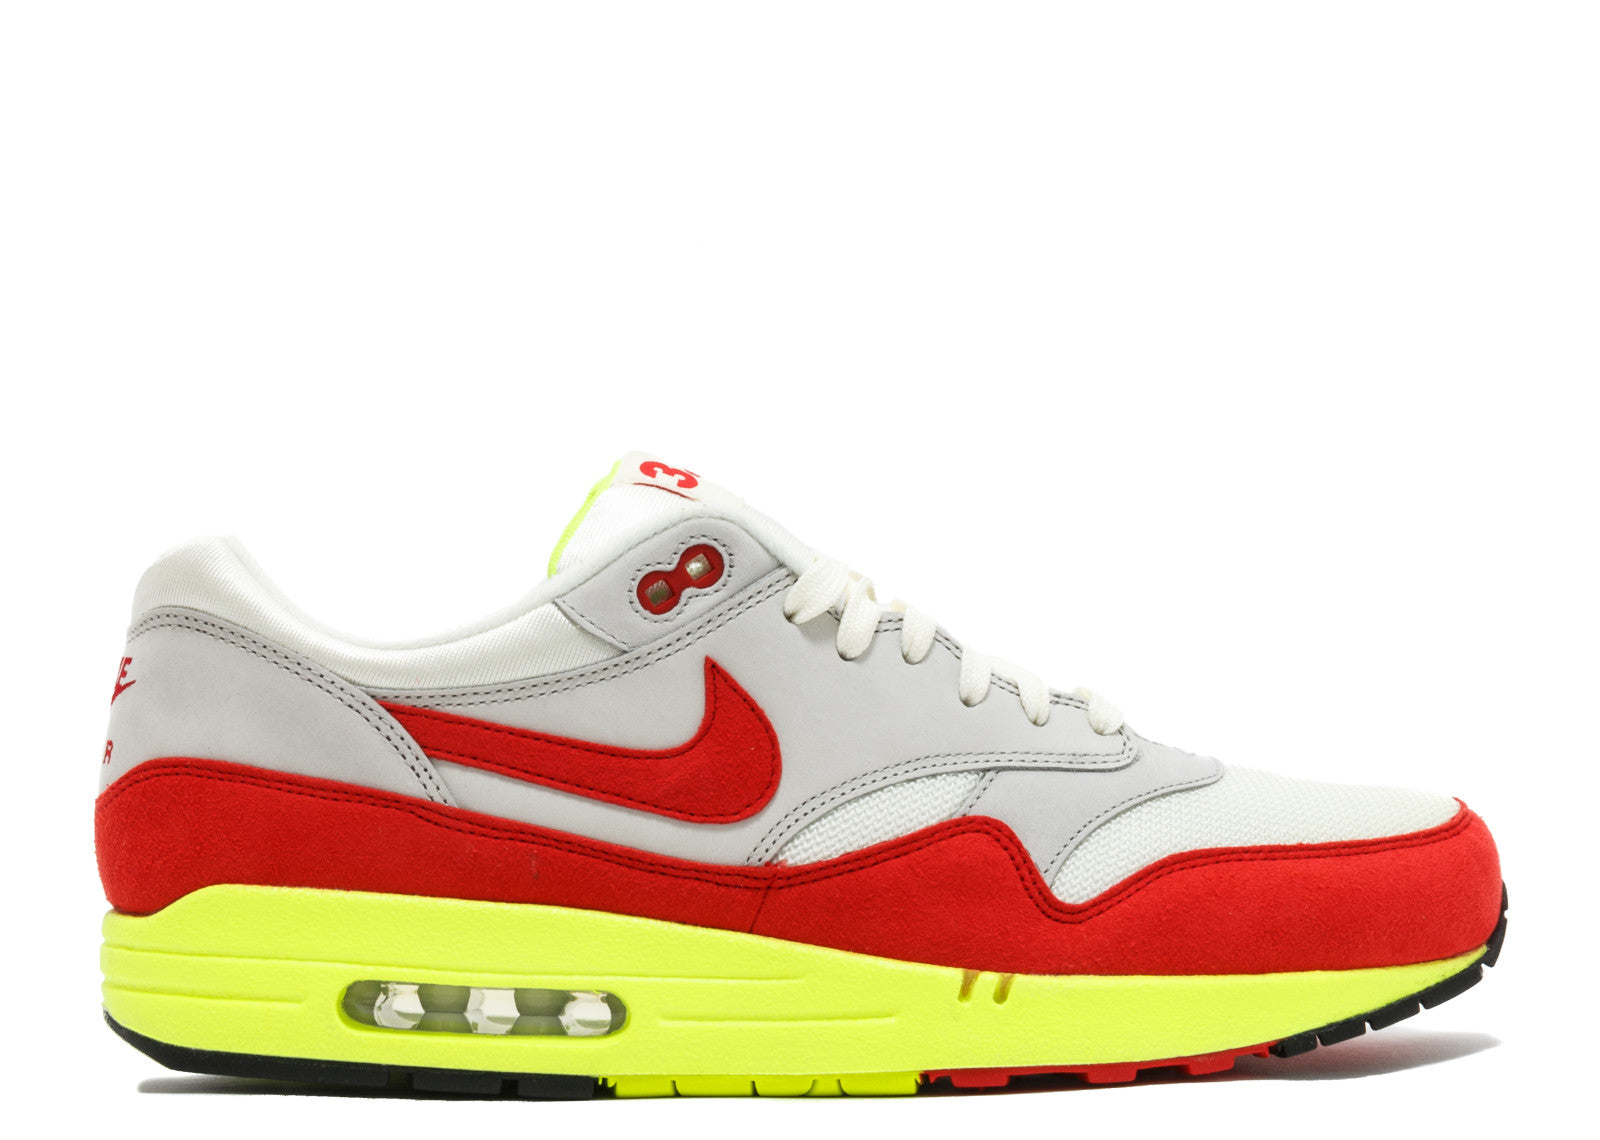 NIKE AIR MAX 1 PREMIUM QS 665,873 106 Kie Ney AMAX one premium 3.26 AIR MAX DAY